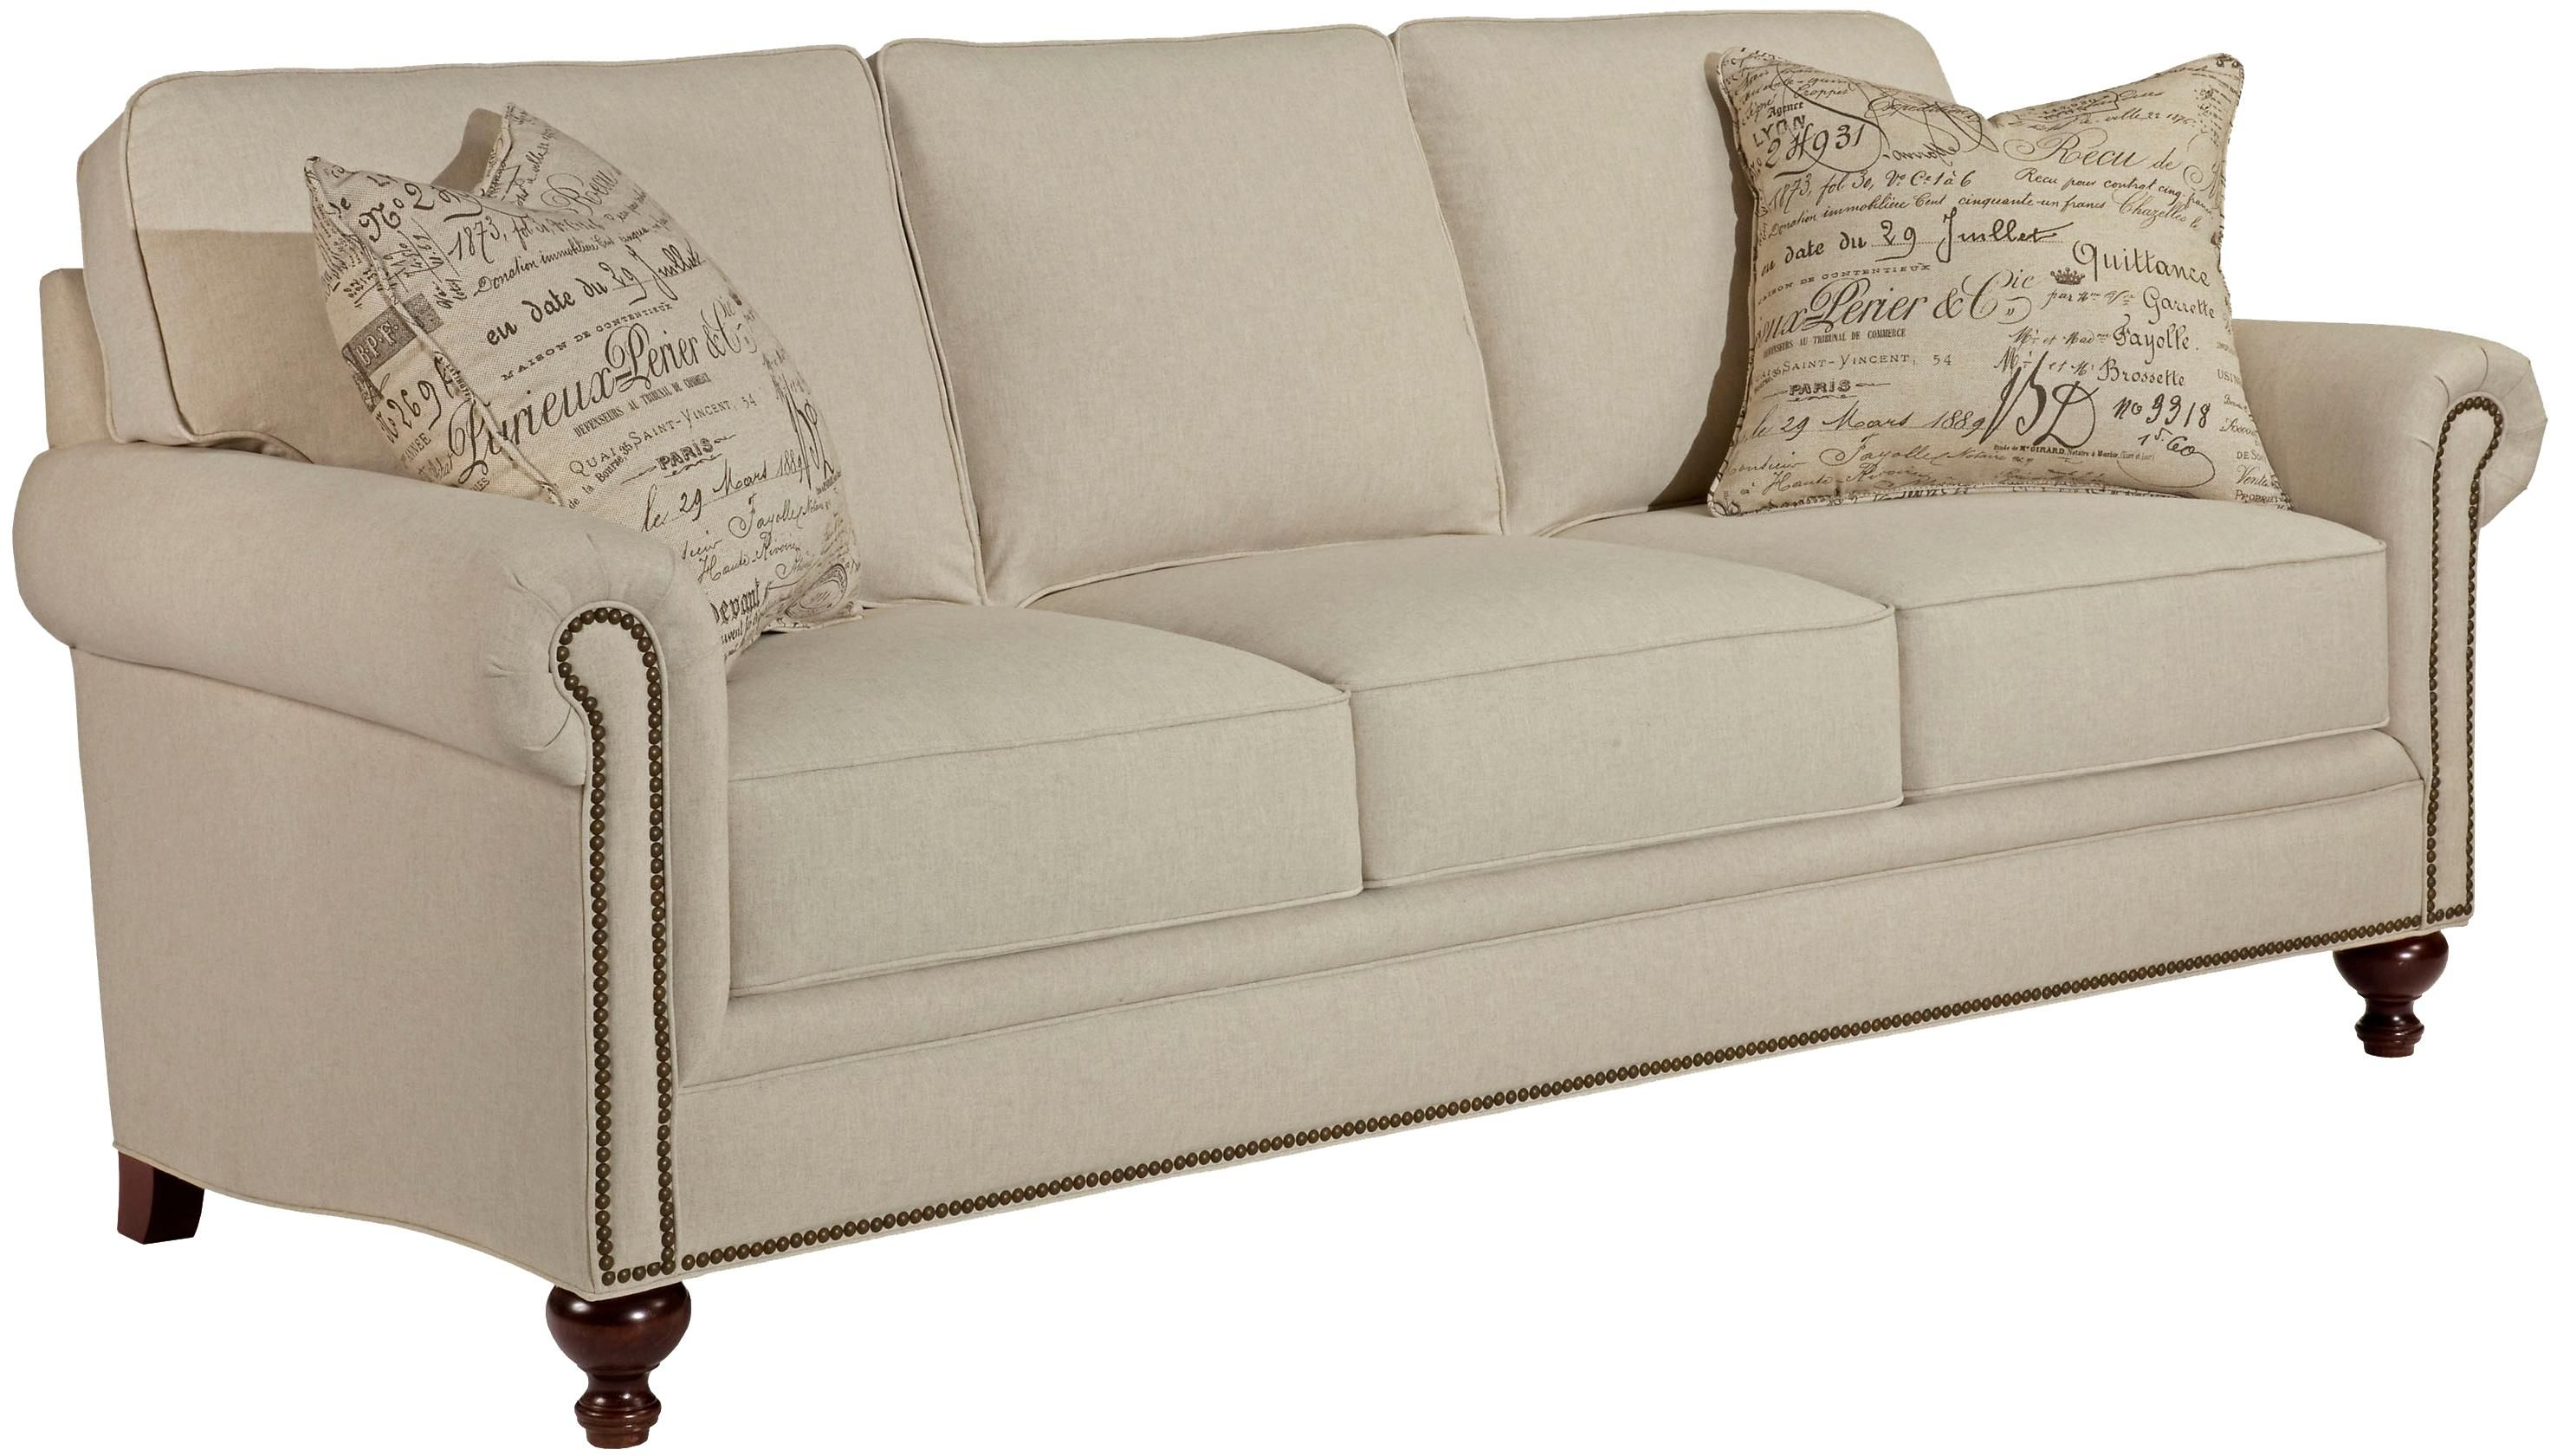 harrison casual style sofa by broyhill furniture white or stone rh pinterest com